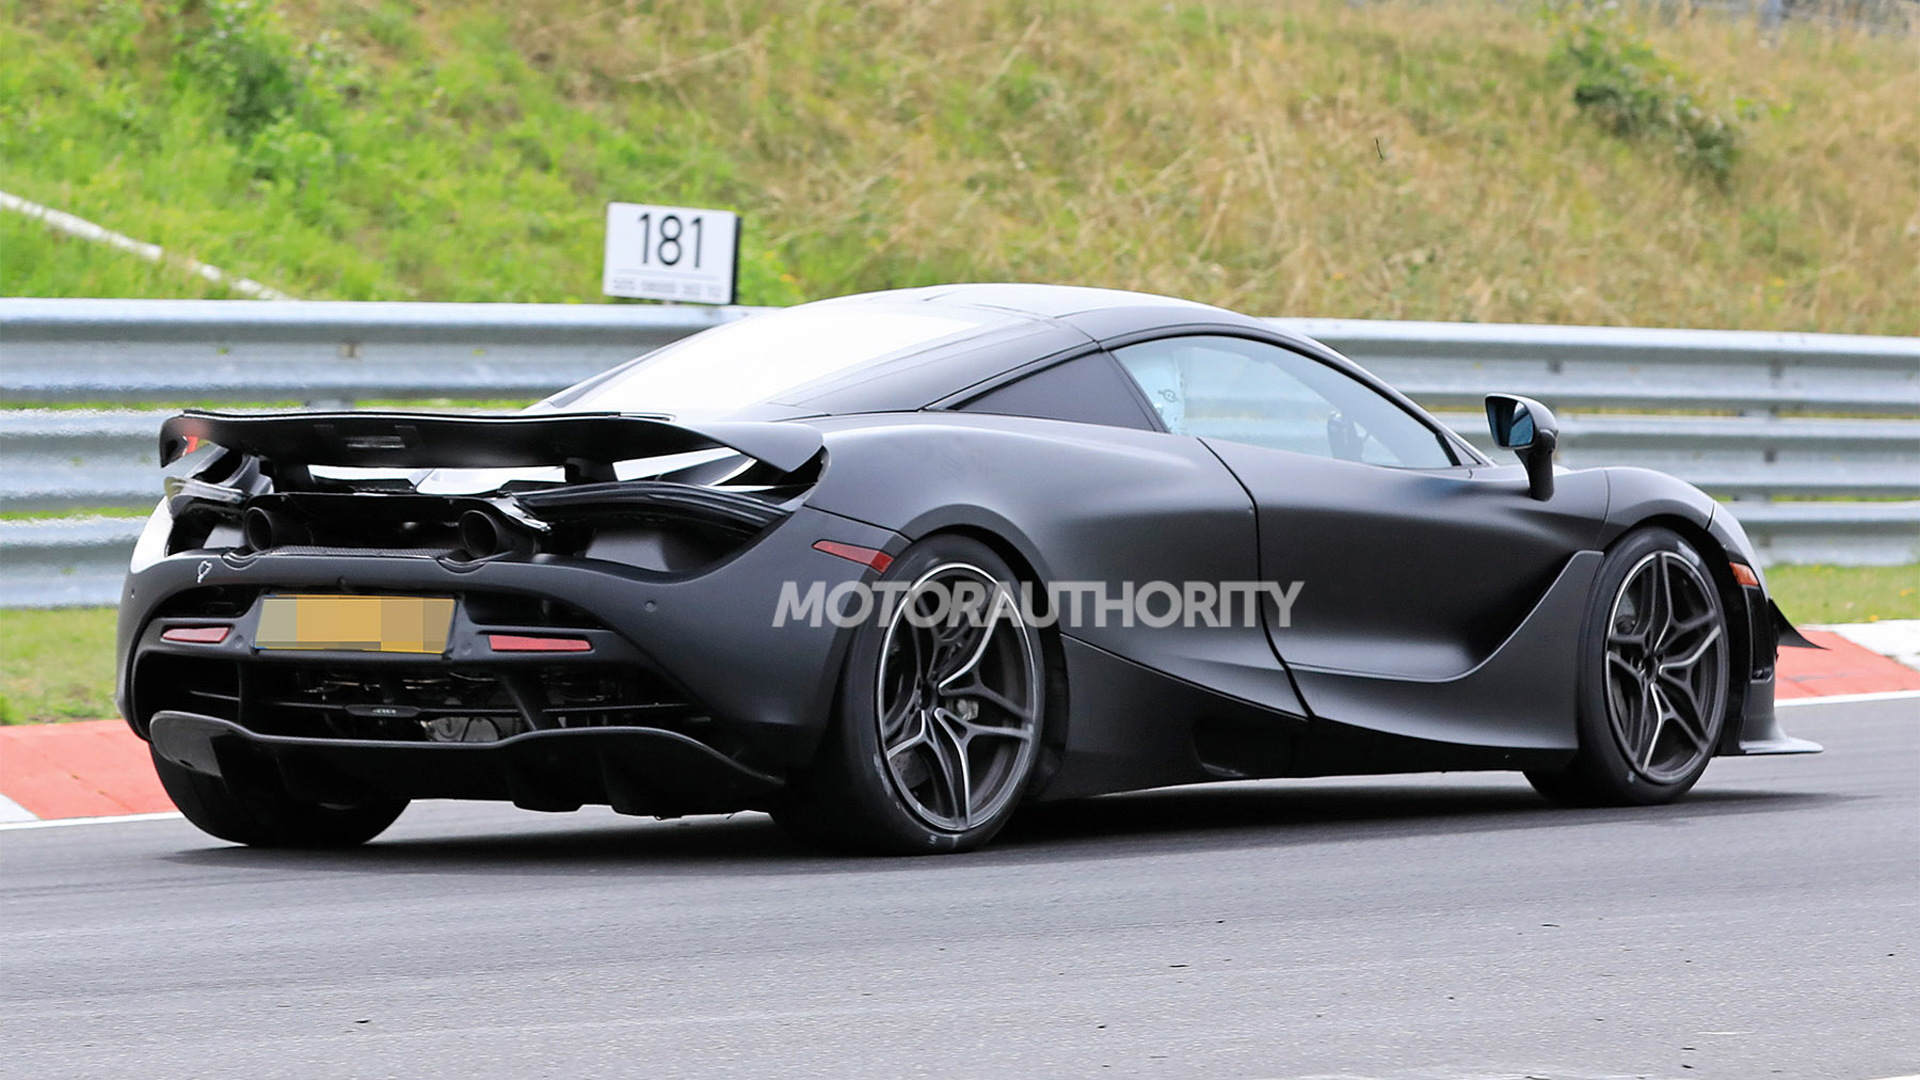 2021 McLaren 750LT test mule spy shots - Photo credit: S. Baldauf/SB-Medien